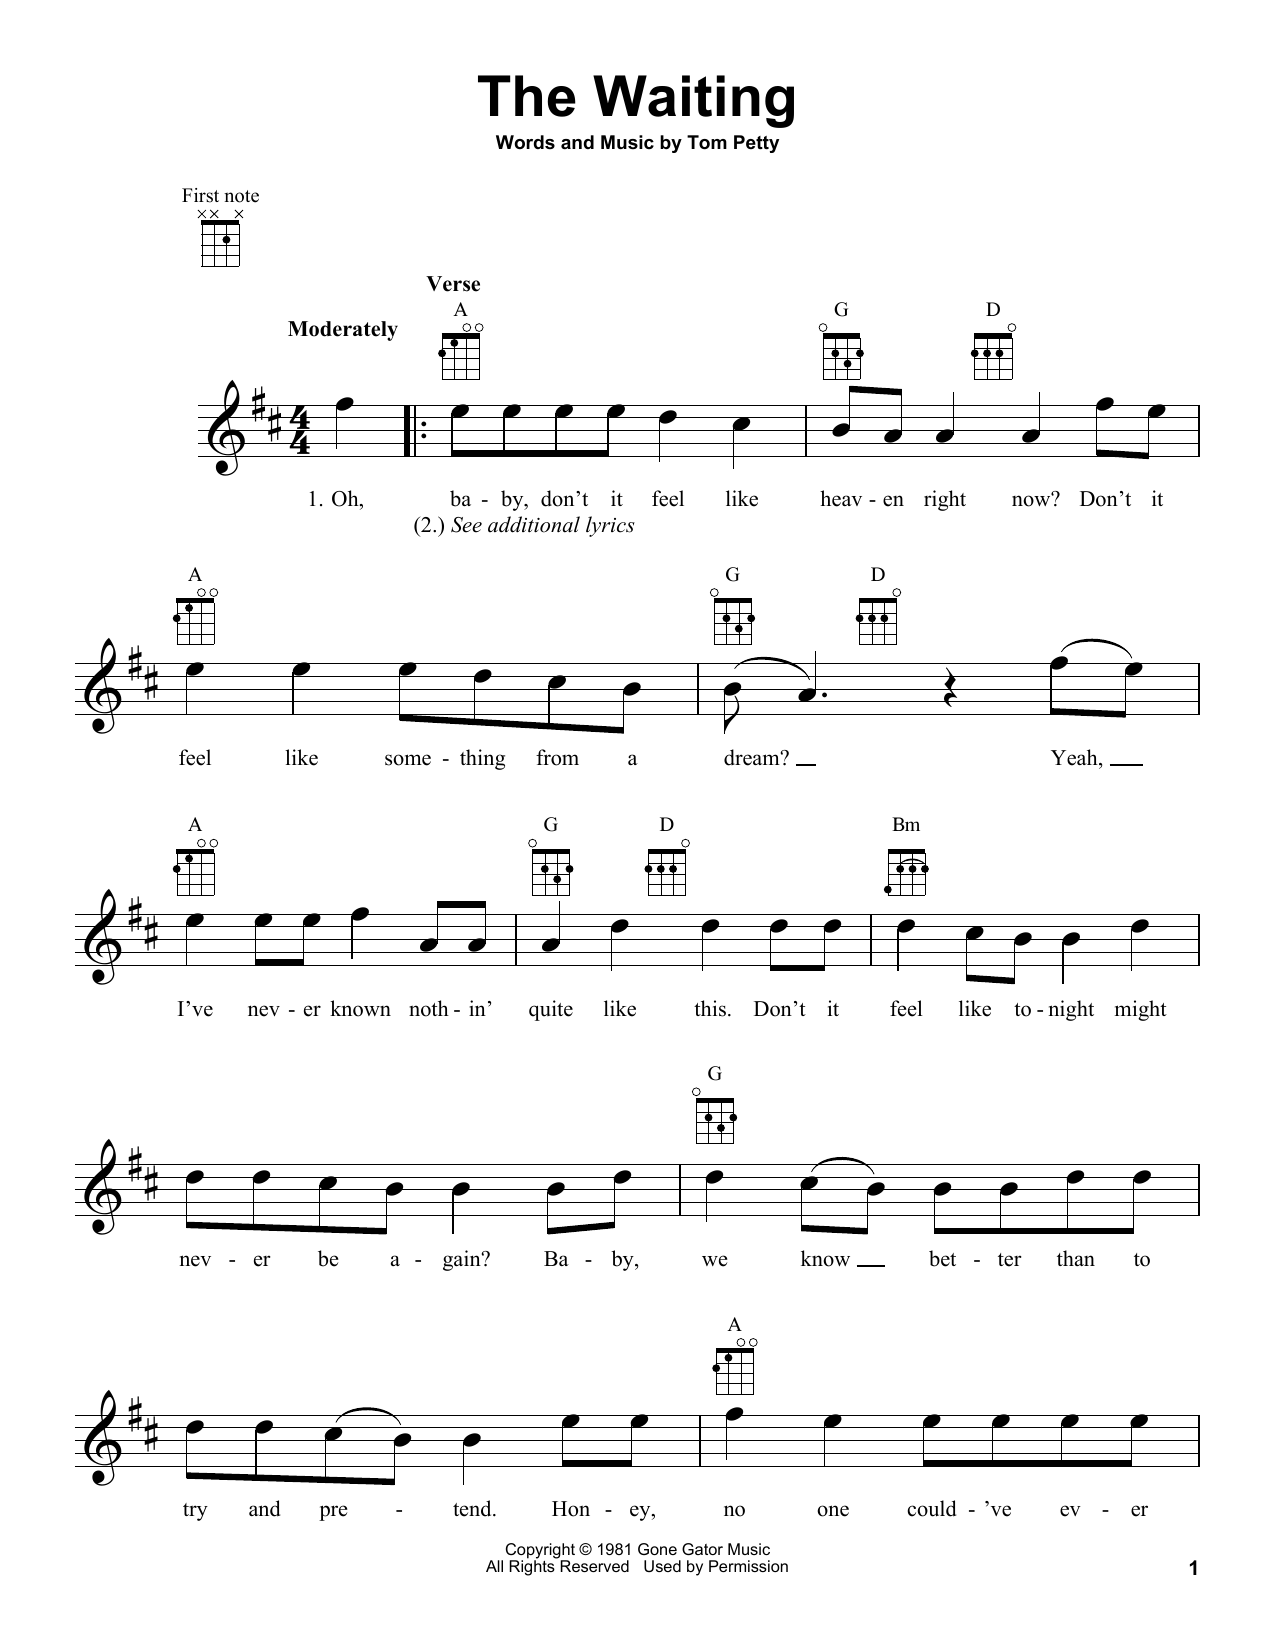 Tom Petty The Waiting Sheet Music Notes, Chords   Download Printable Piano,  Vocal & Guitar Right Hand Melody PDF Score   SKU 15